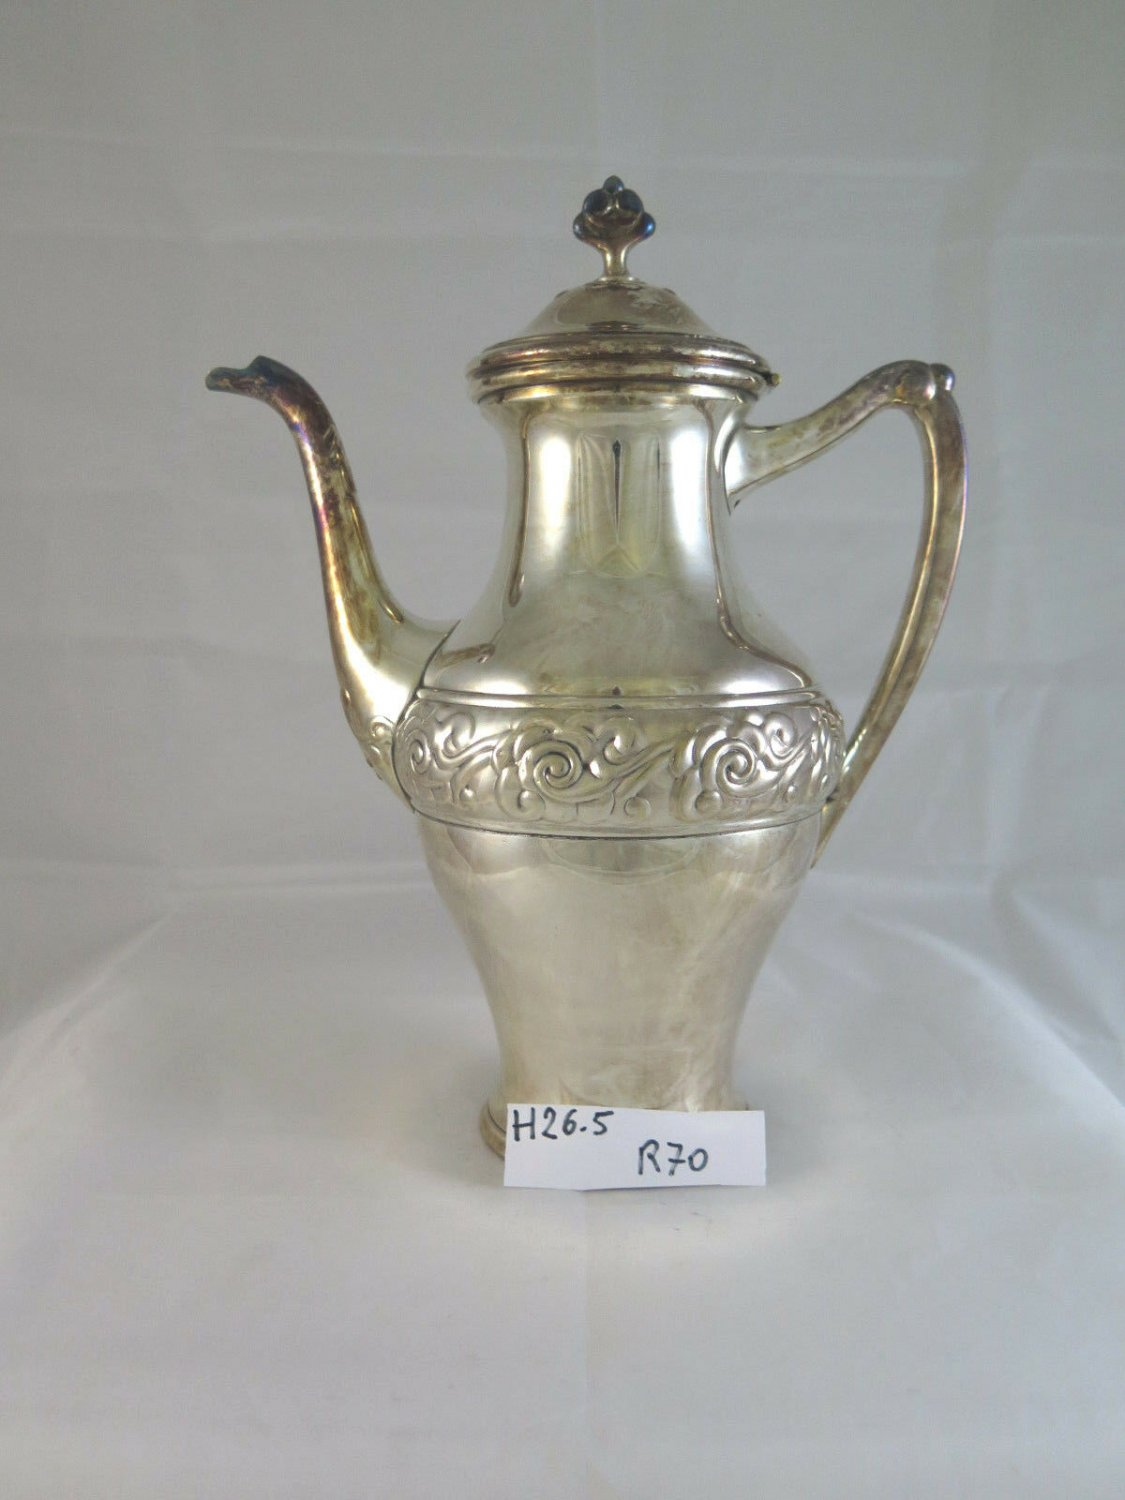 Antique Teapot Coffee Pot Sheffield Denmark First Movecento Branded R70